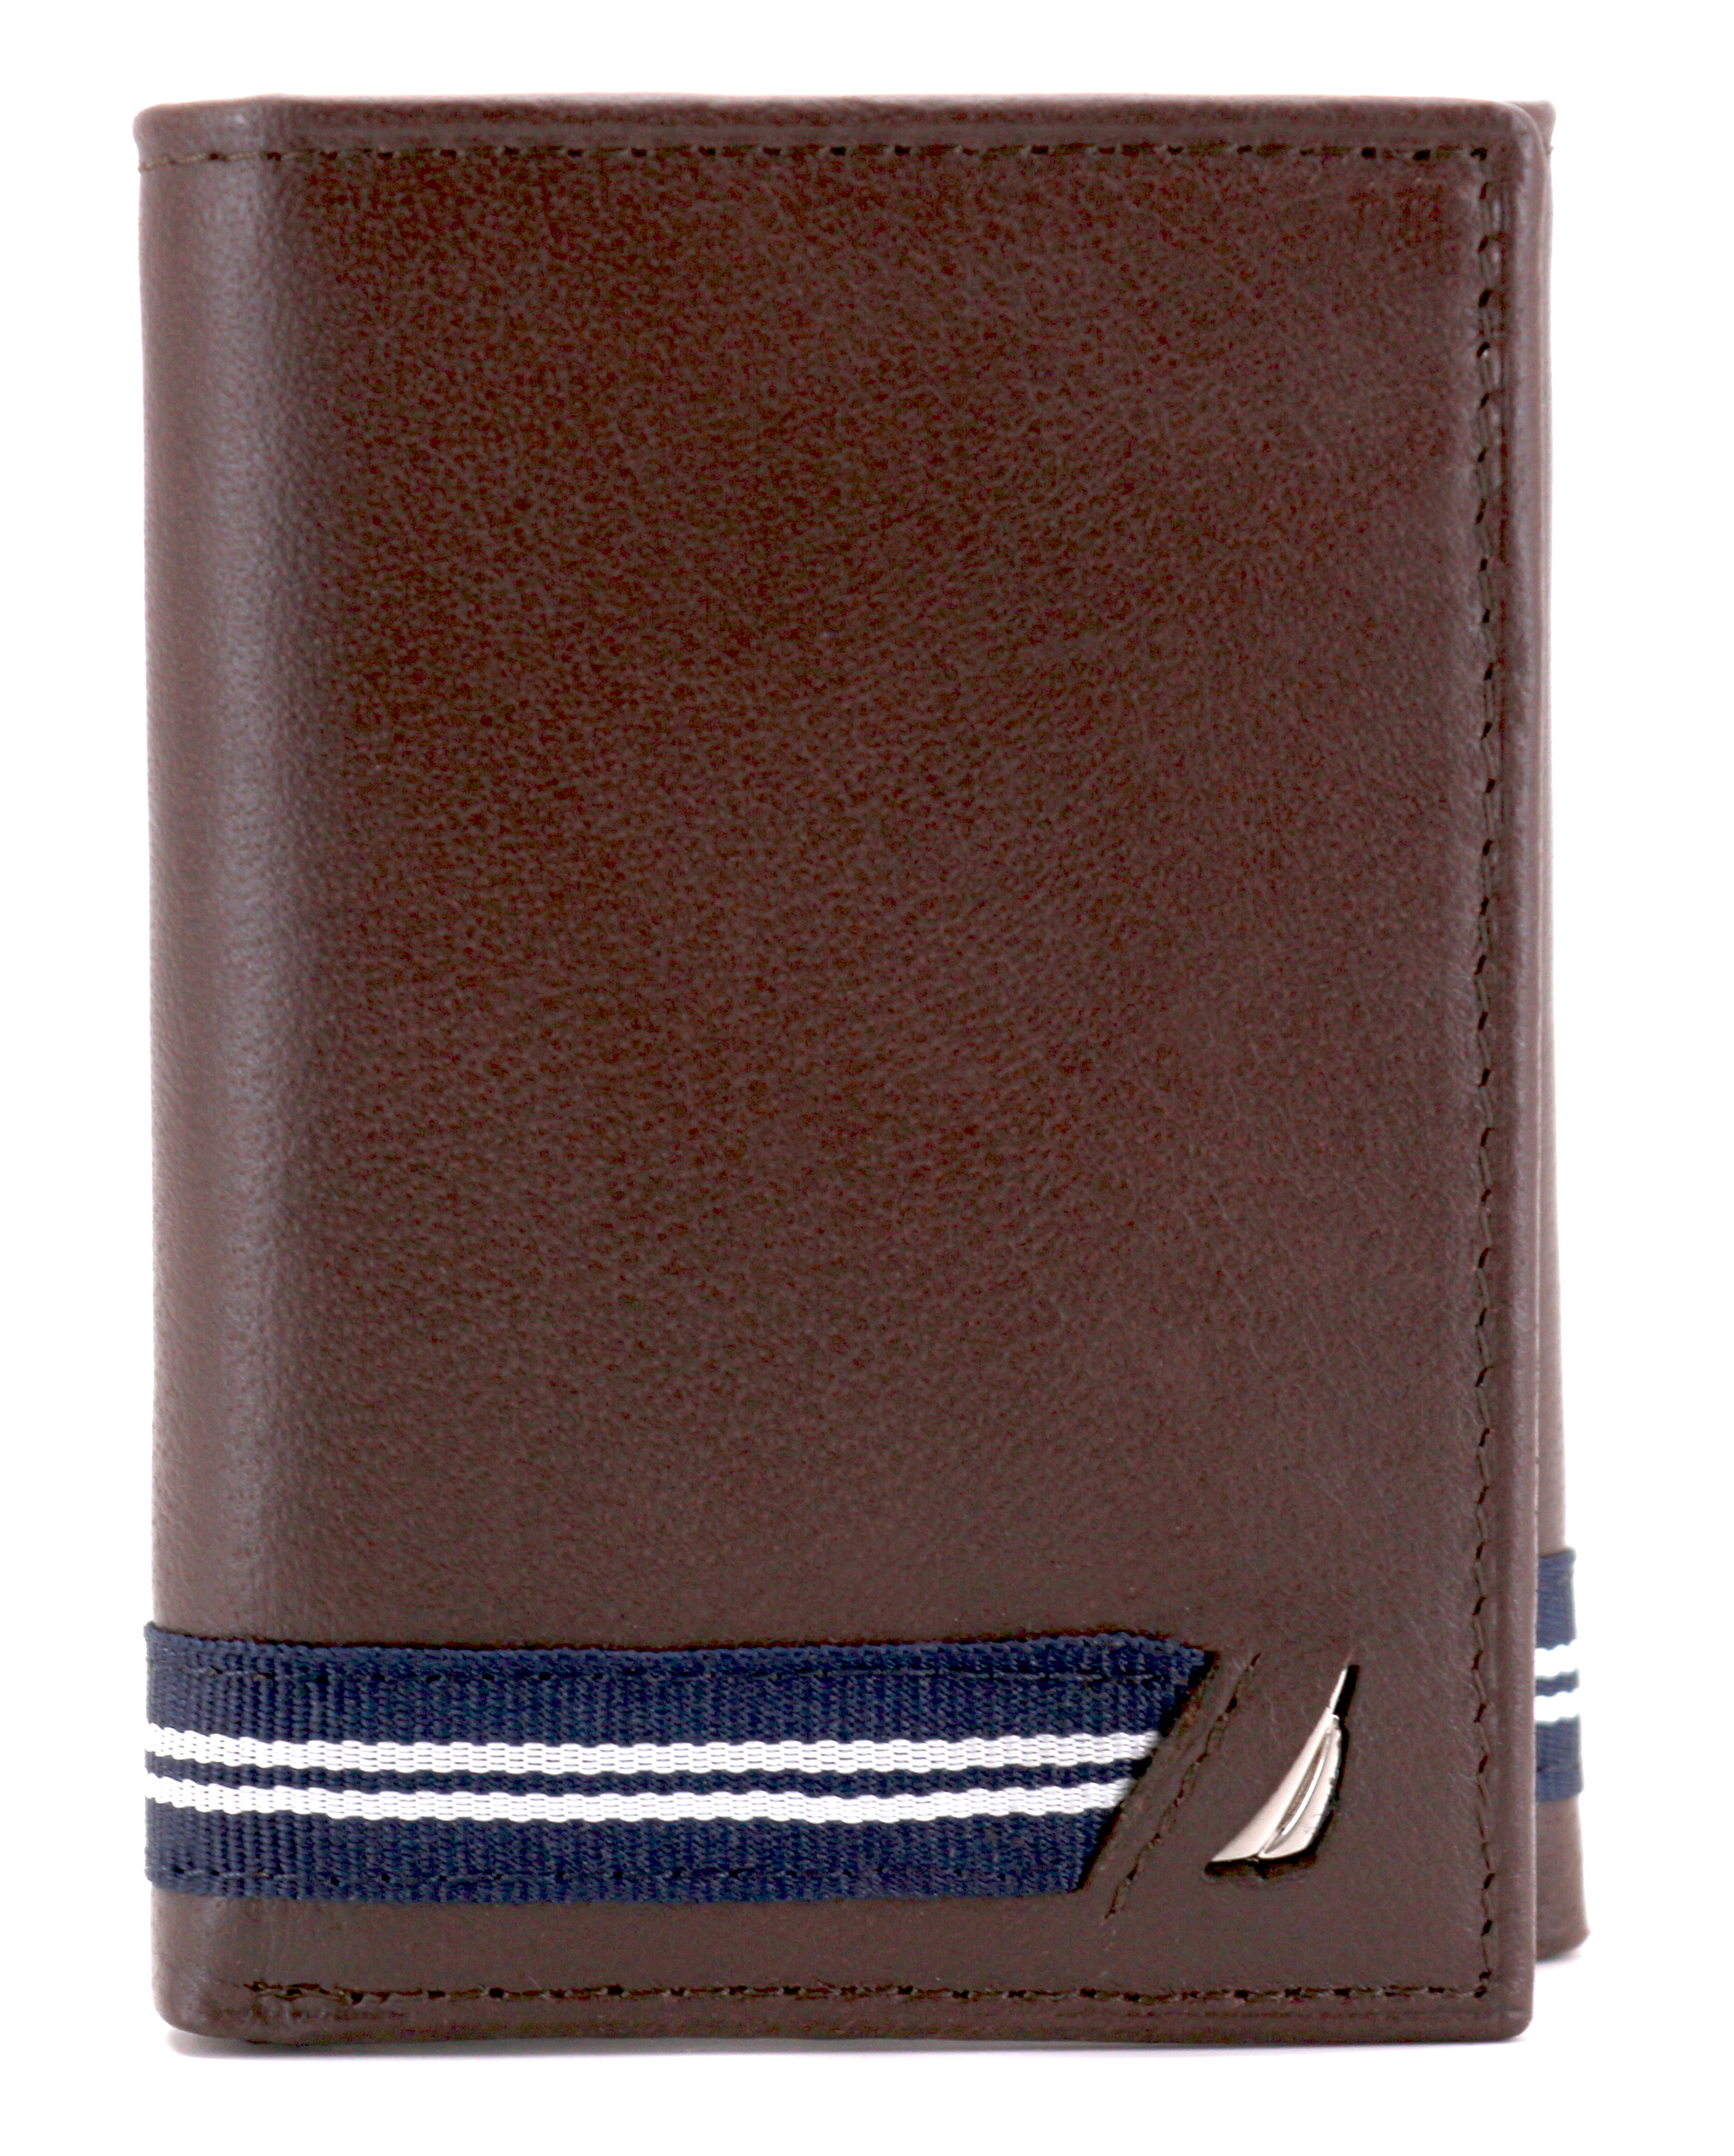 Nautica-Men-039-s-Genuine-Leather-Credit-Card-Id-Holder-Trifold-Wallet thumbnail 14